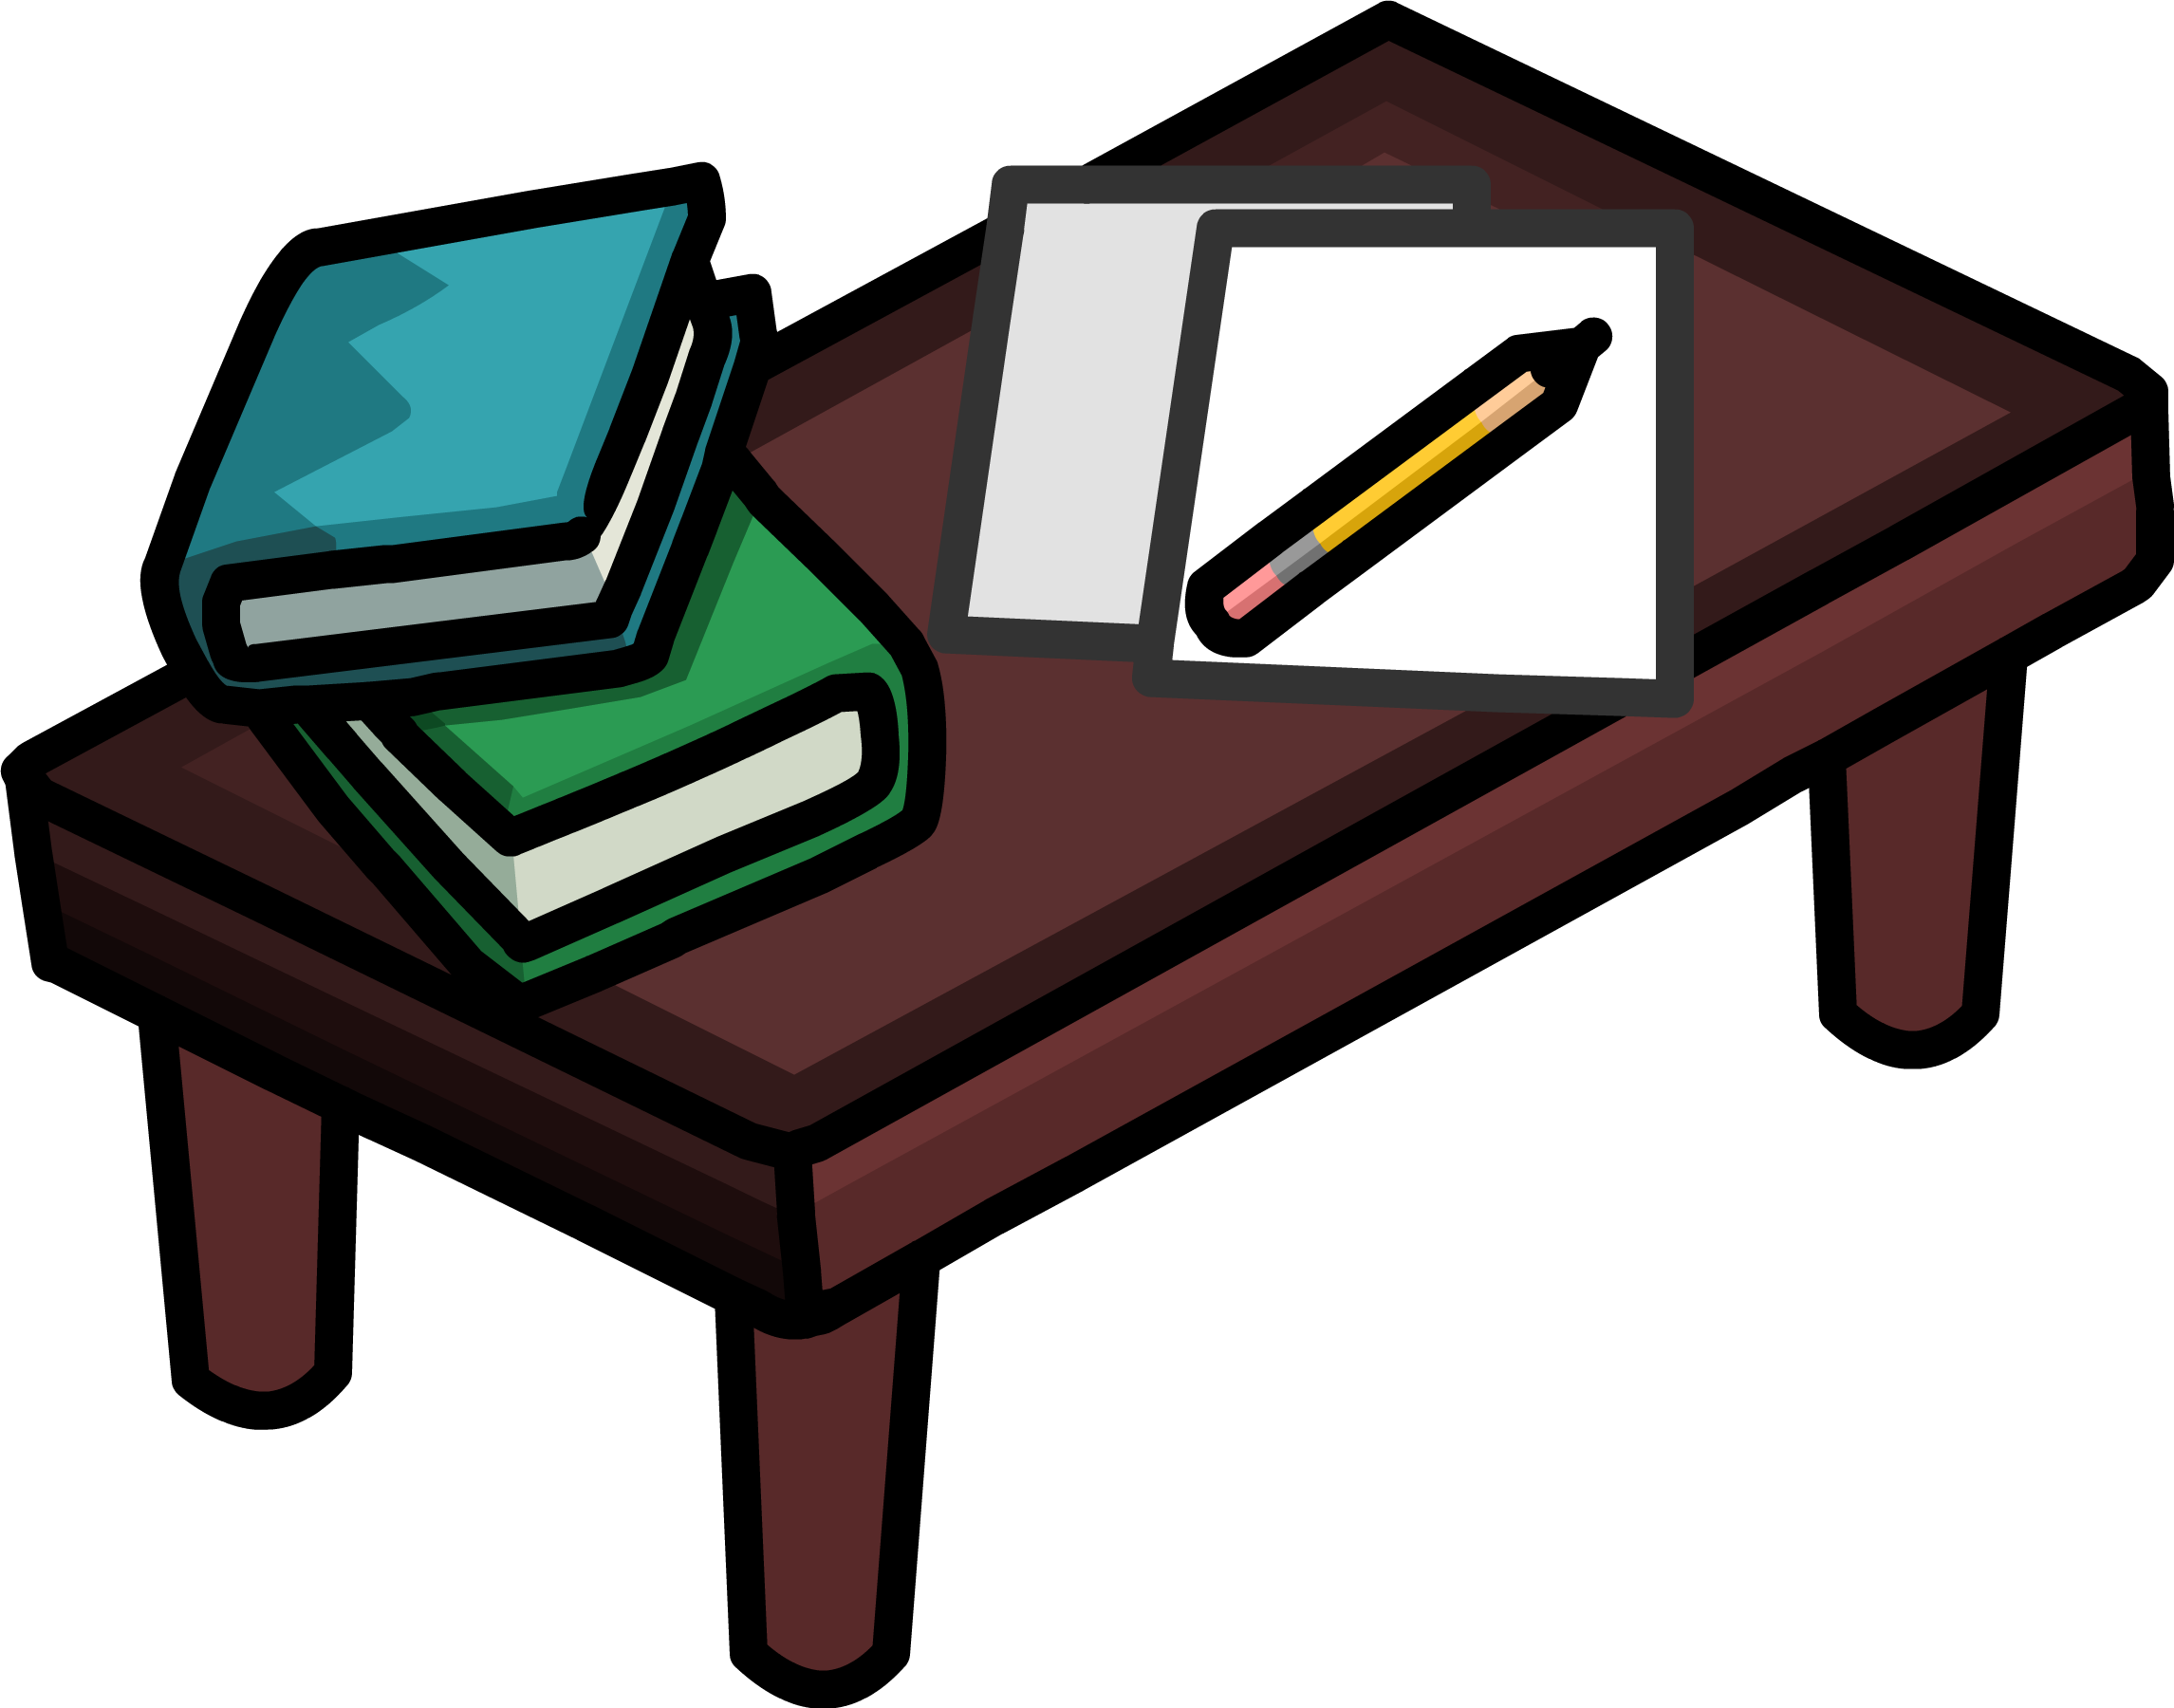 Cpu desk club penguin. Clipart table table student